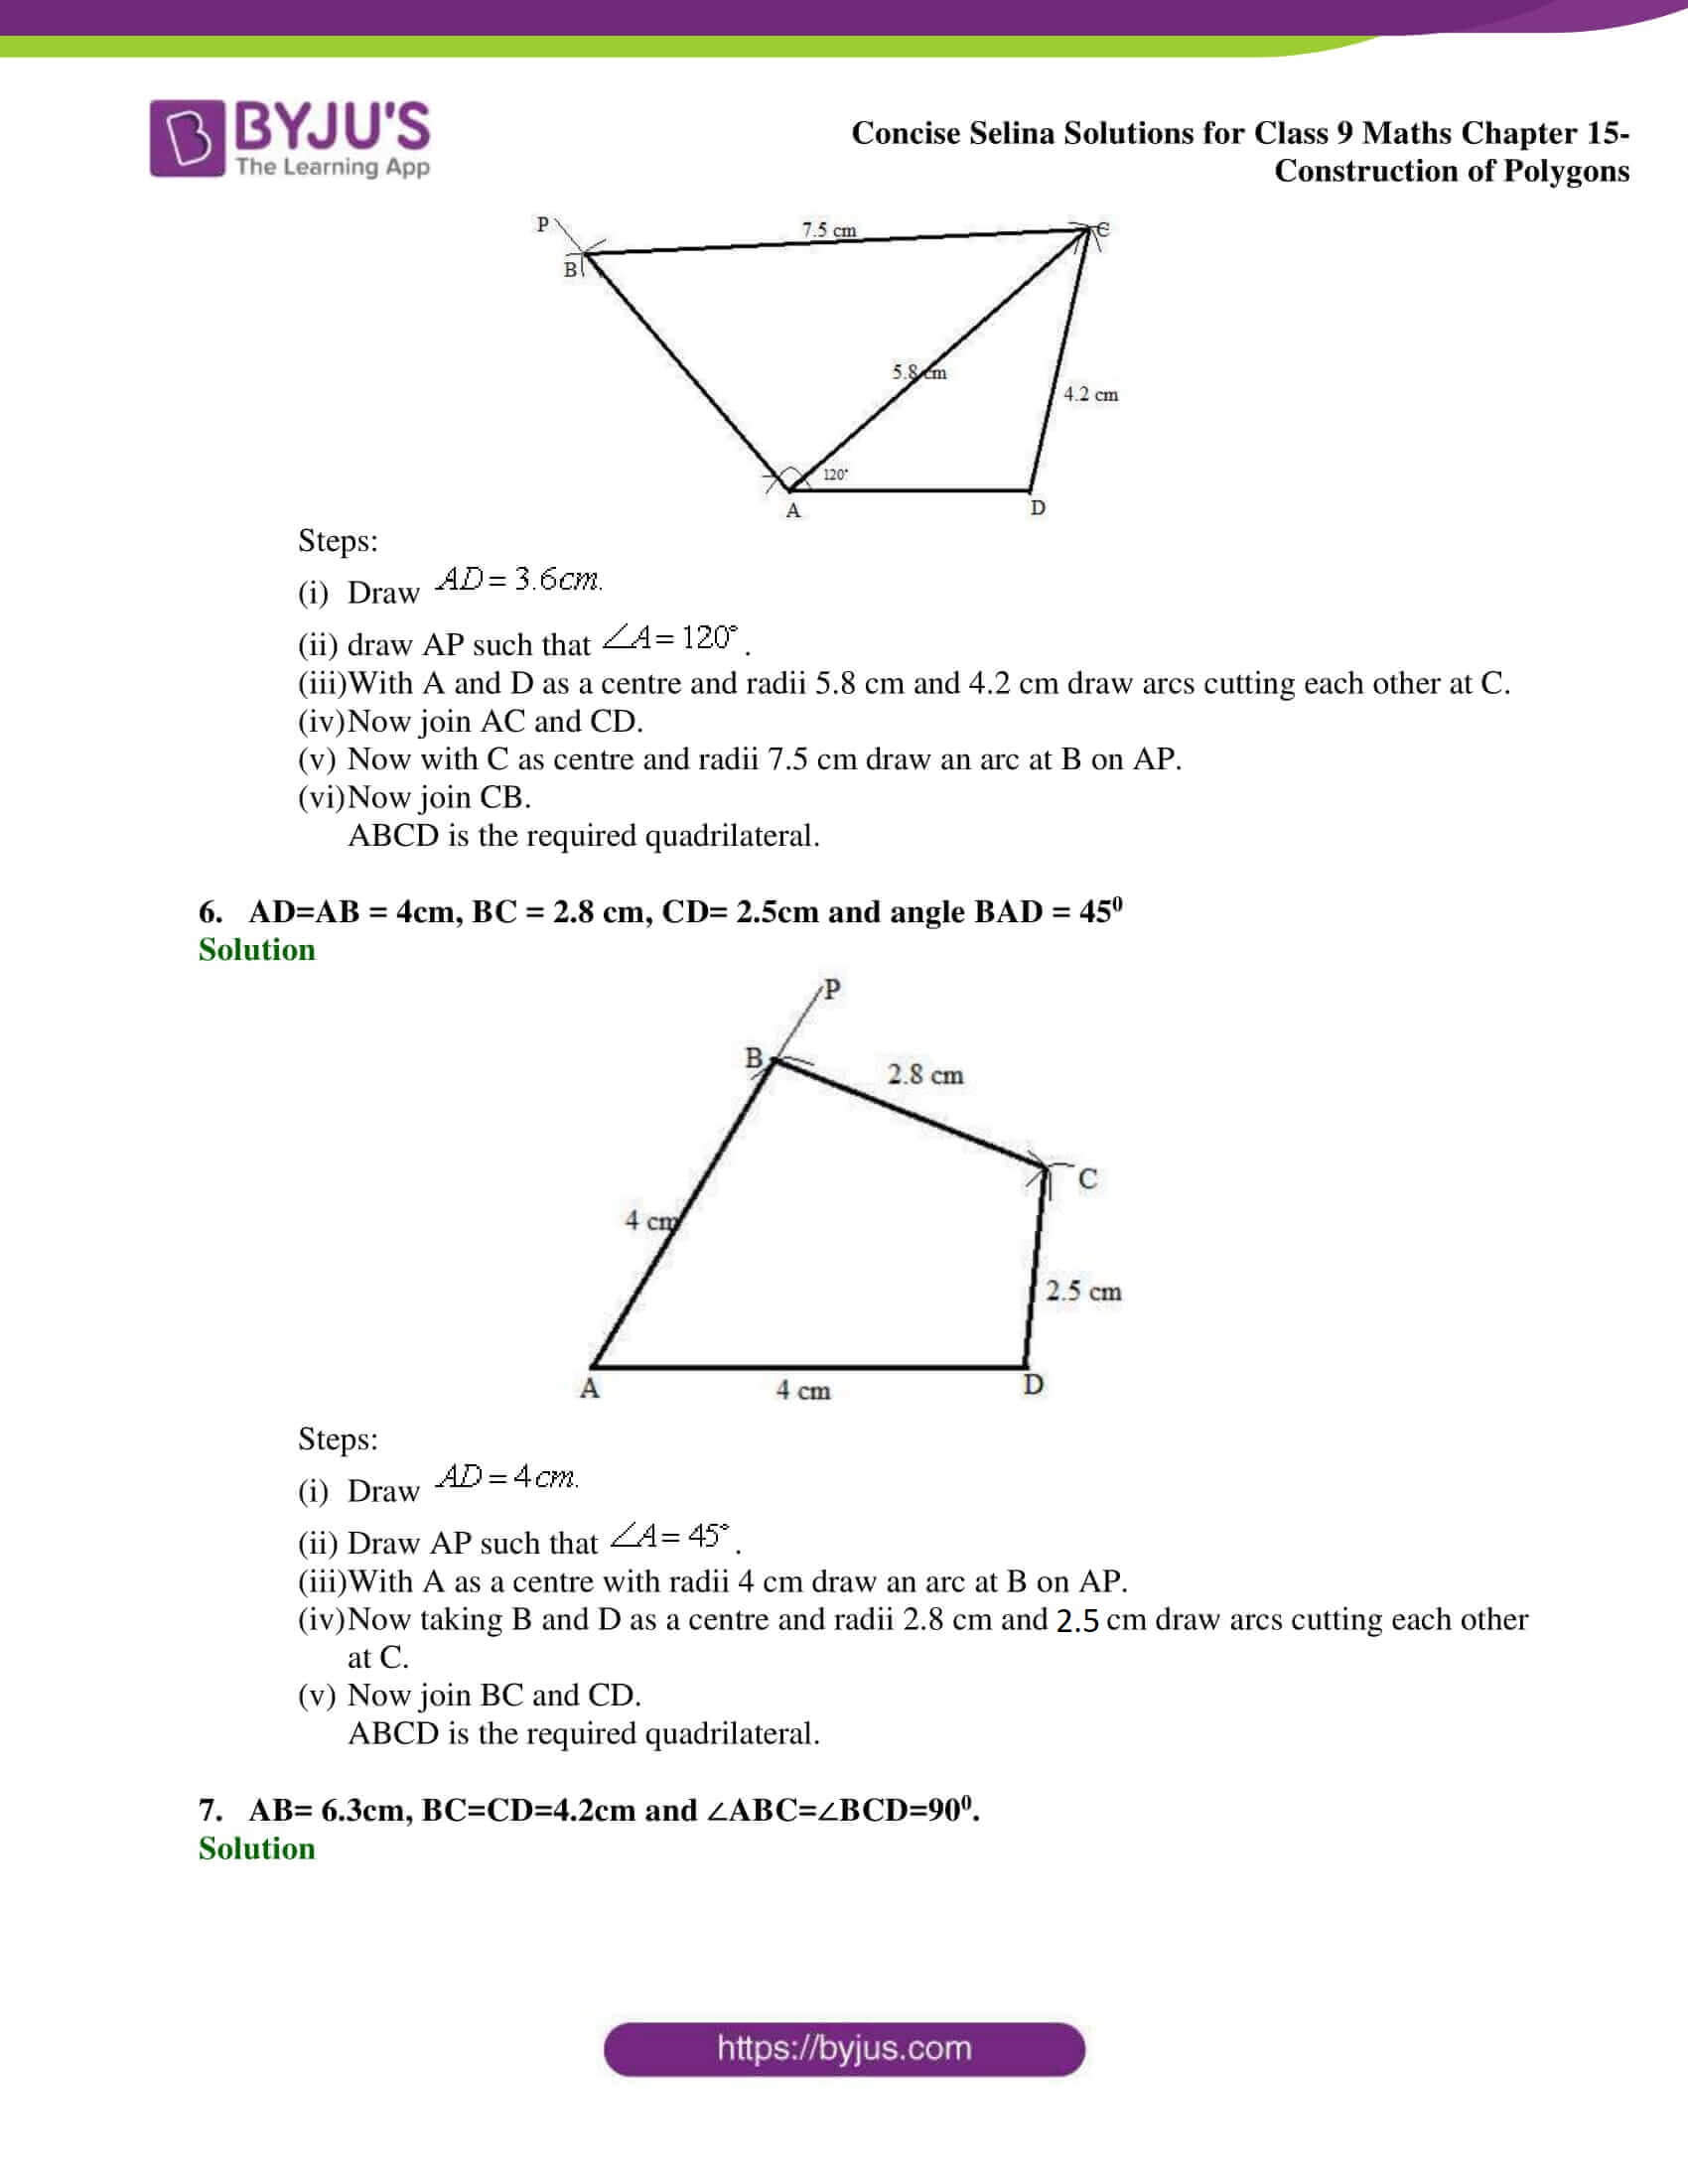 selina Solutions for Class 9 Maths Chapter 15 part 03